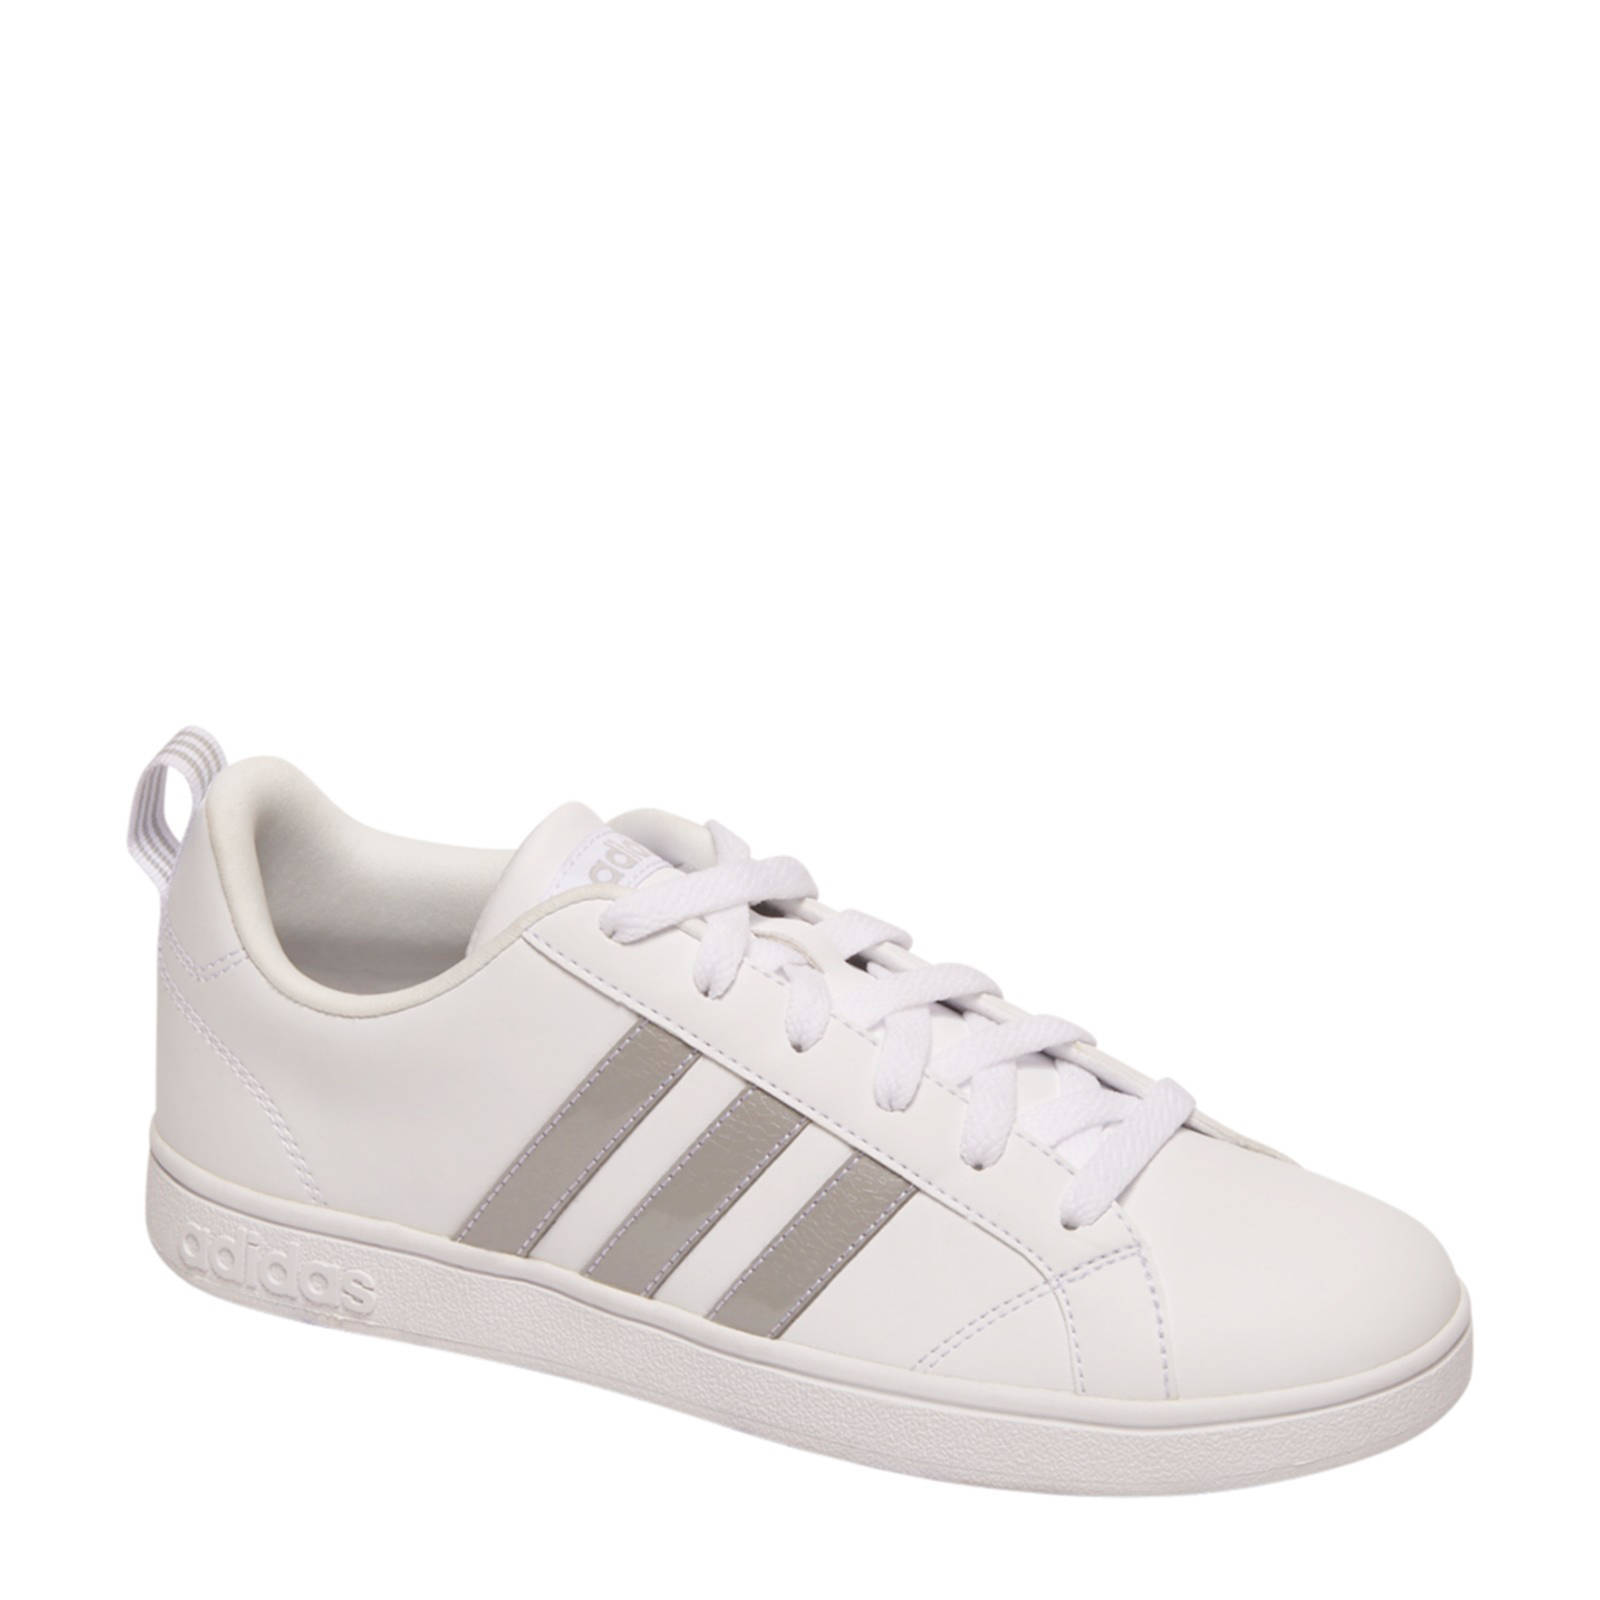 VS Advantage sneakers wit/zilver